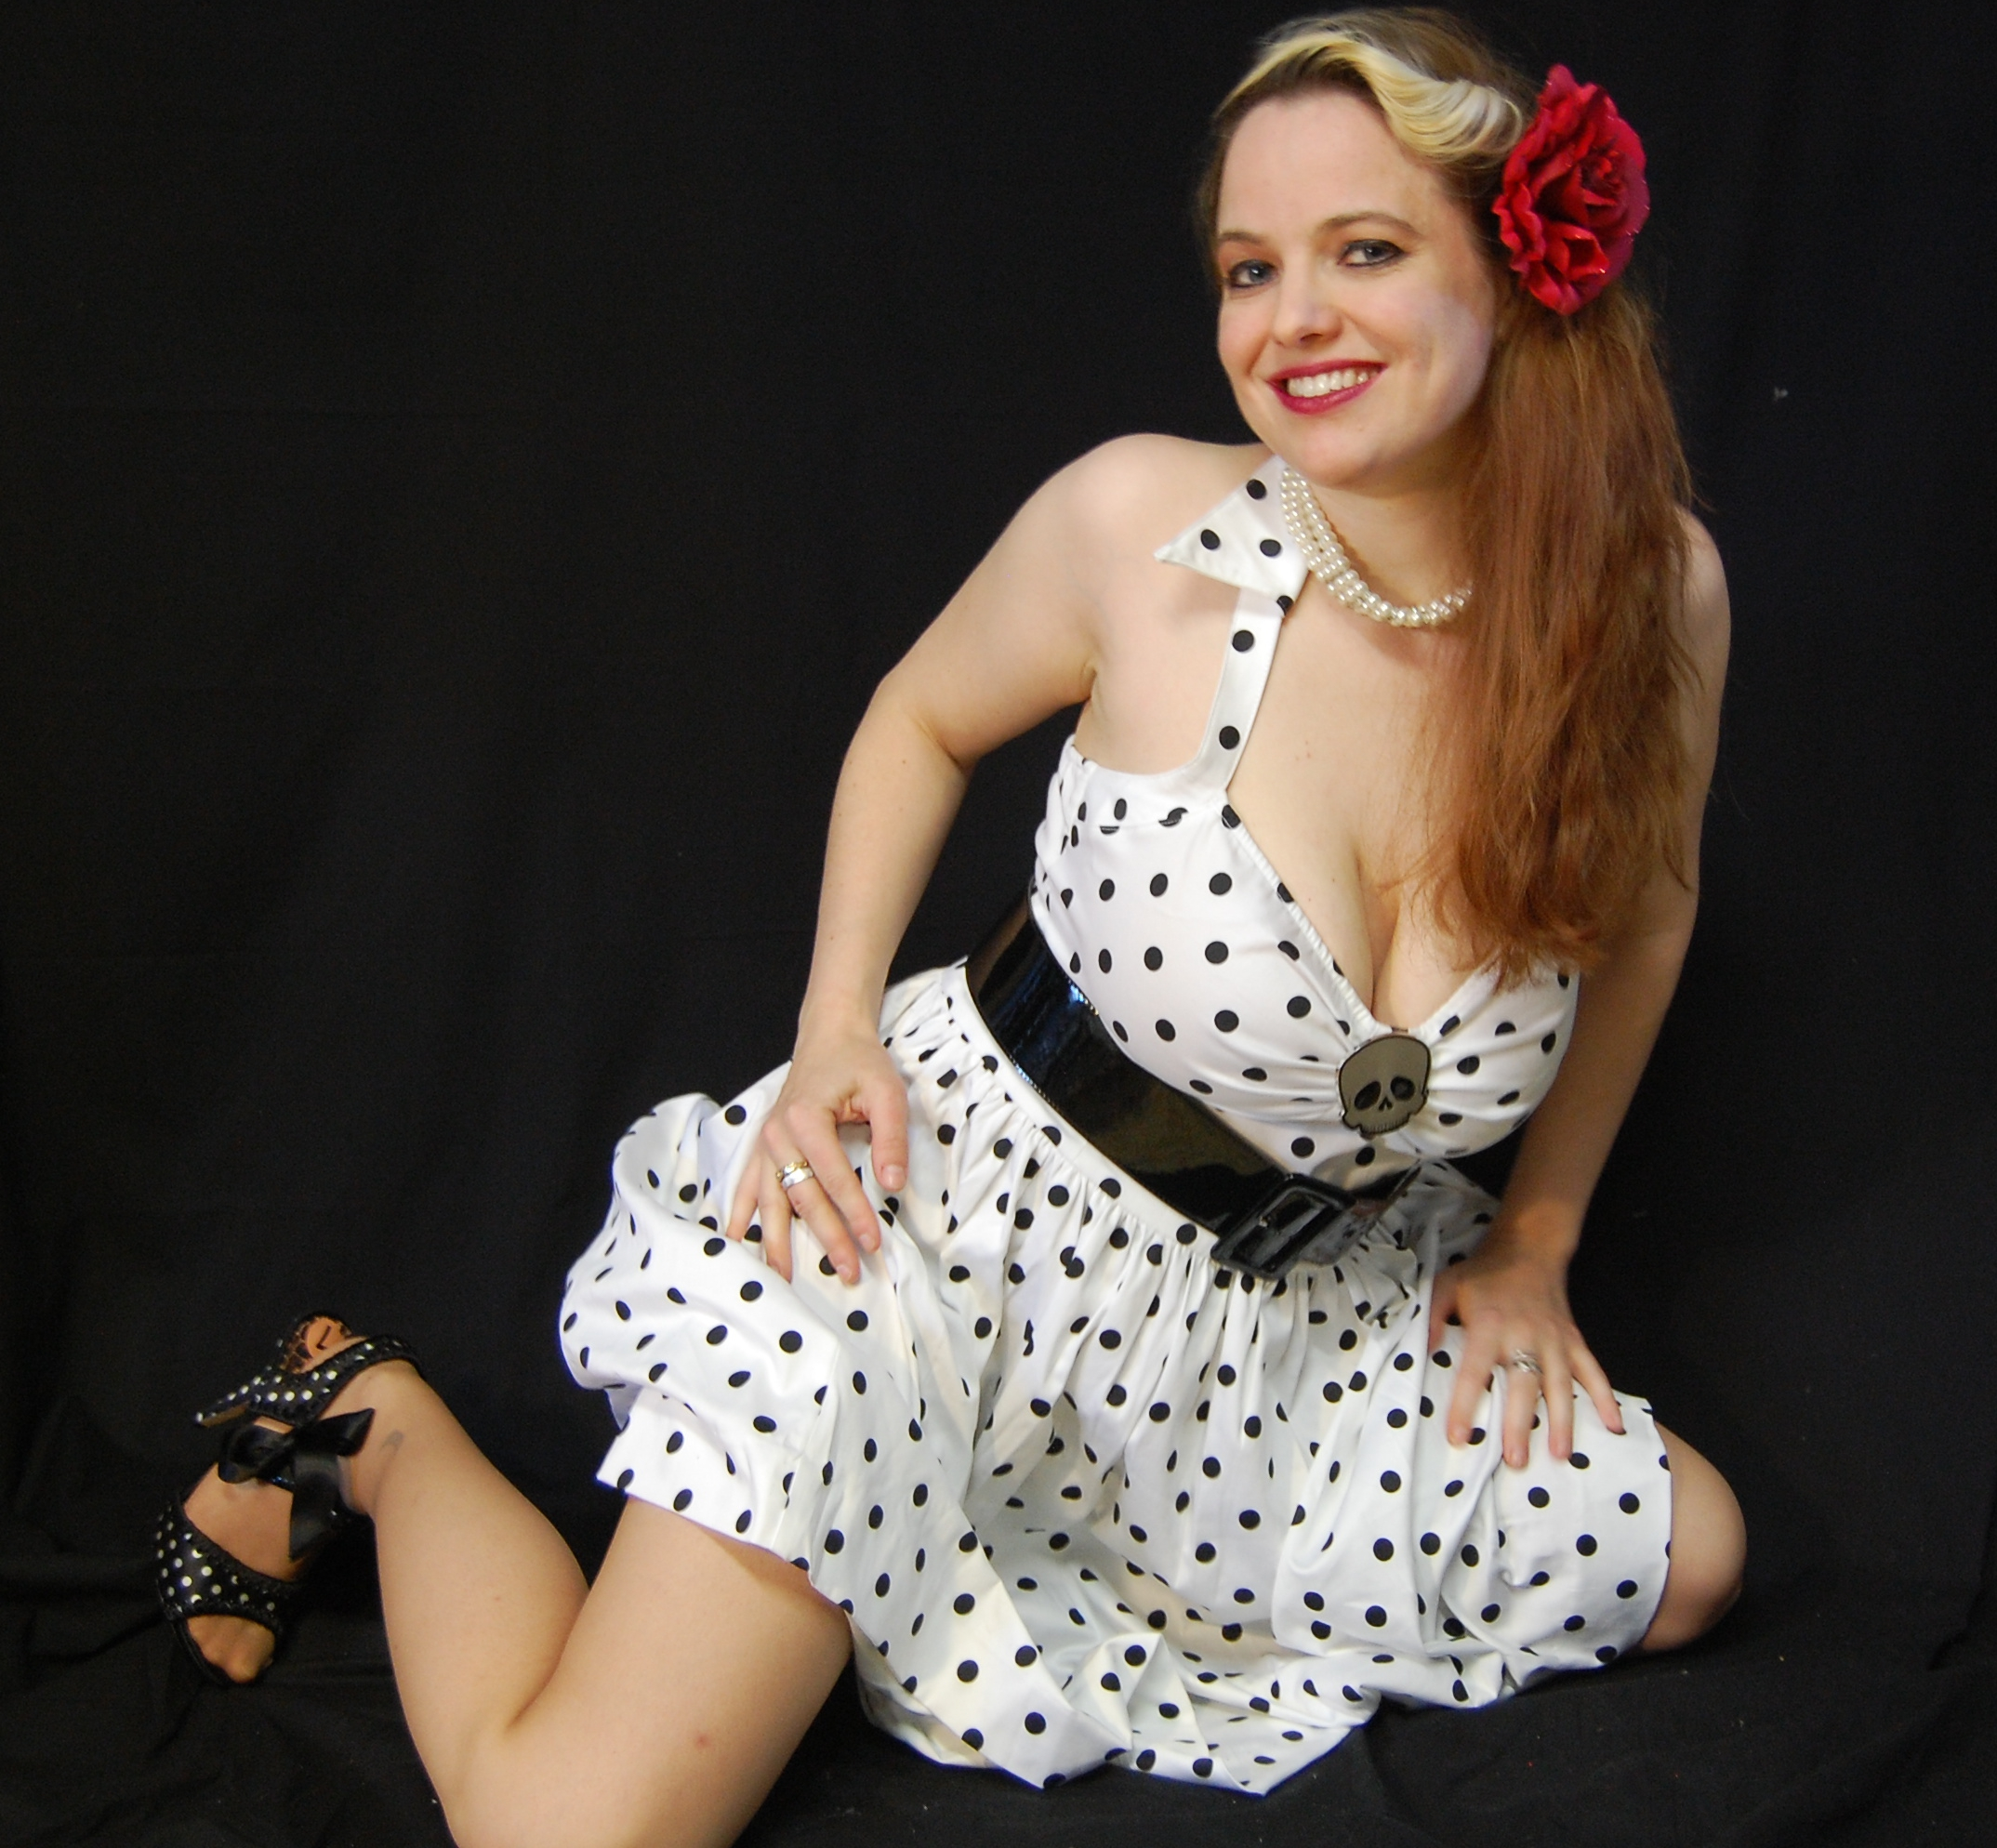 2010 Fife pinup white dress 0668